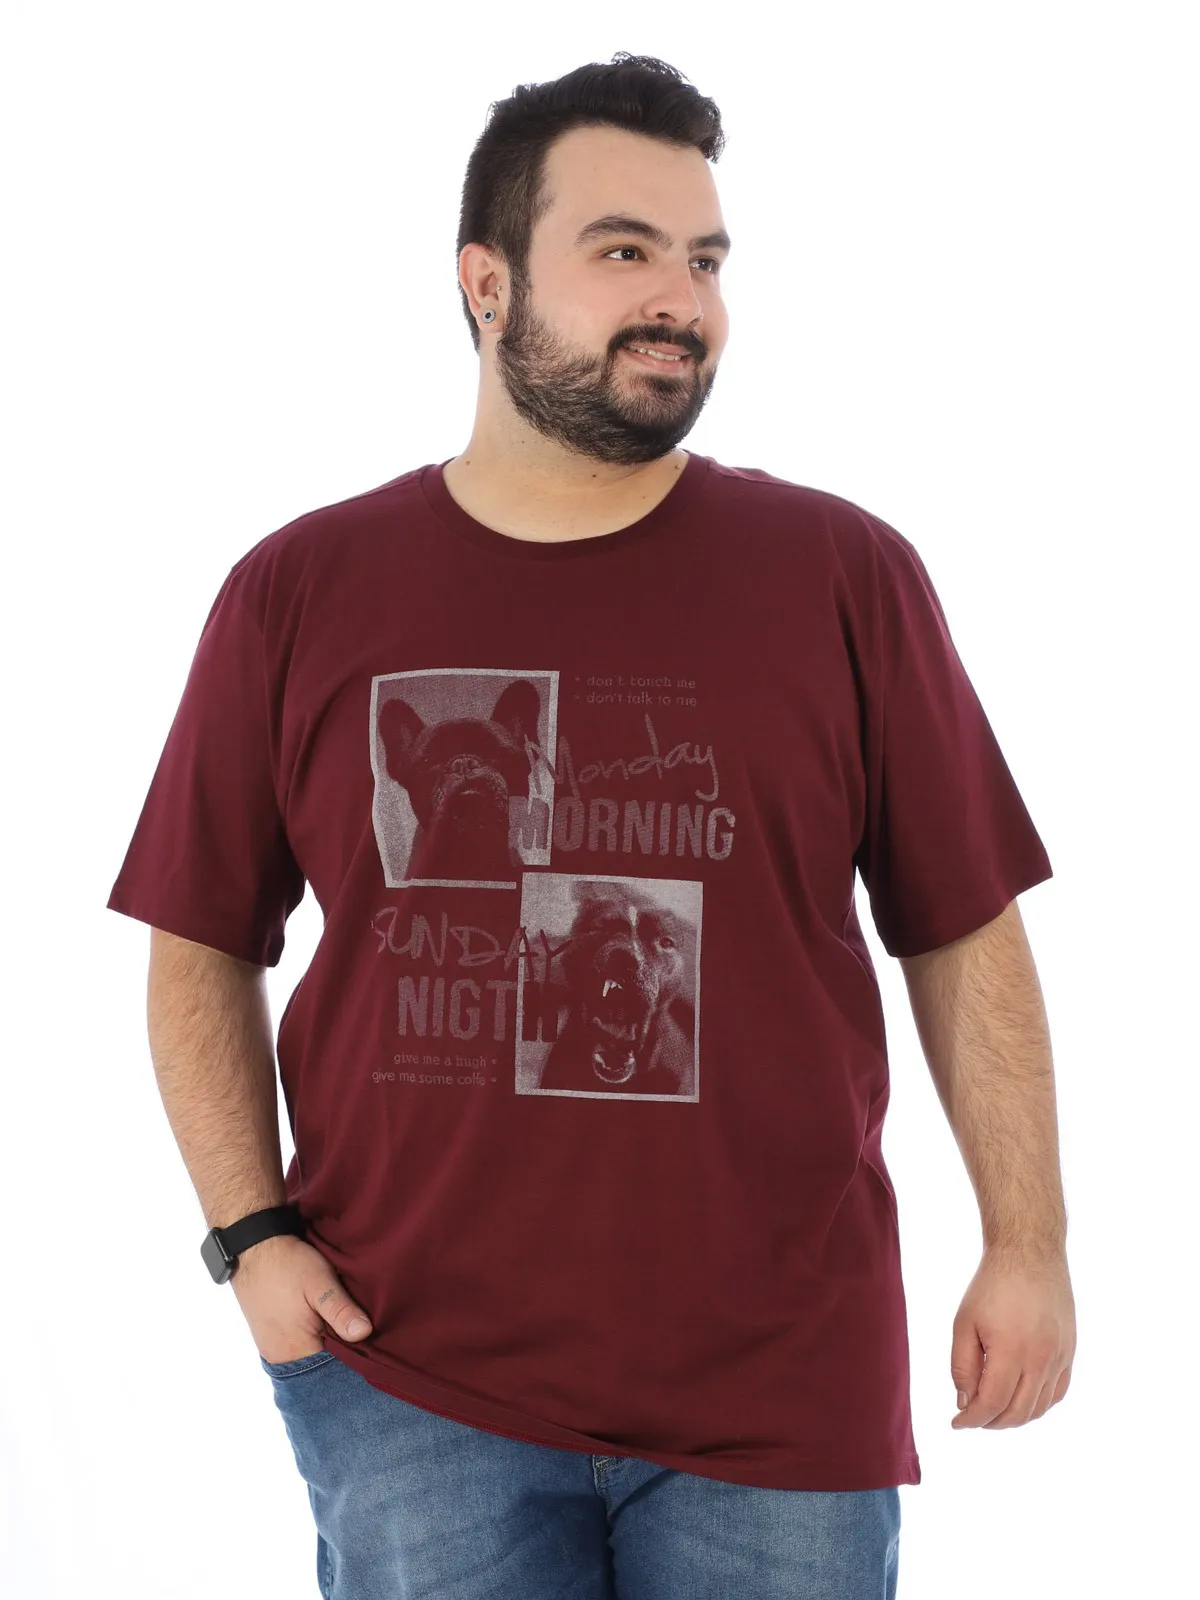 Camiseta Plus Size Masculino Manga Curta Estampada Bordo